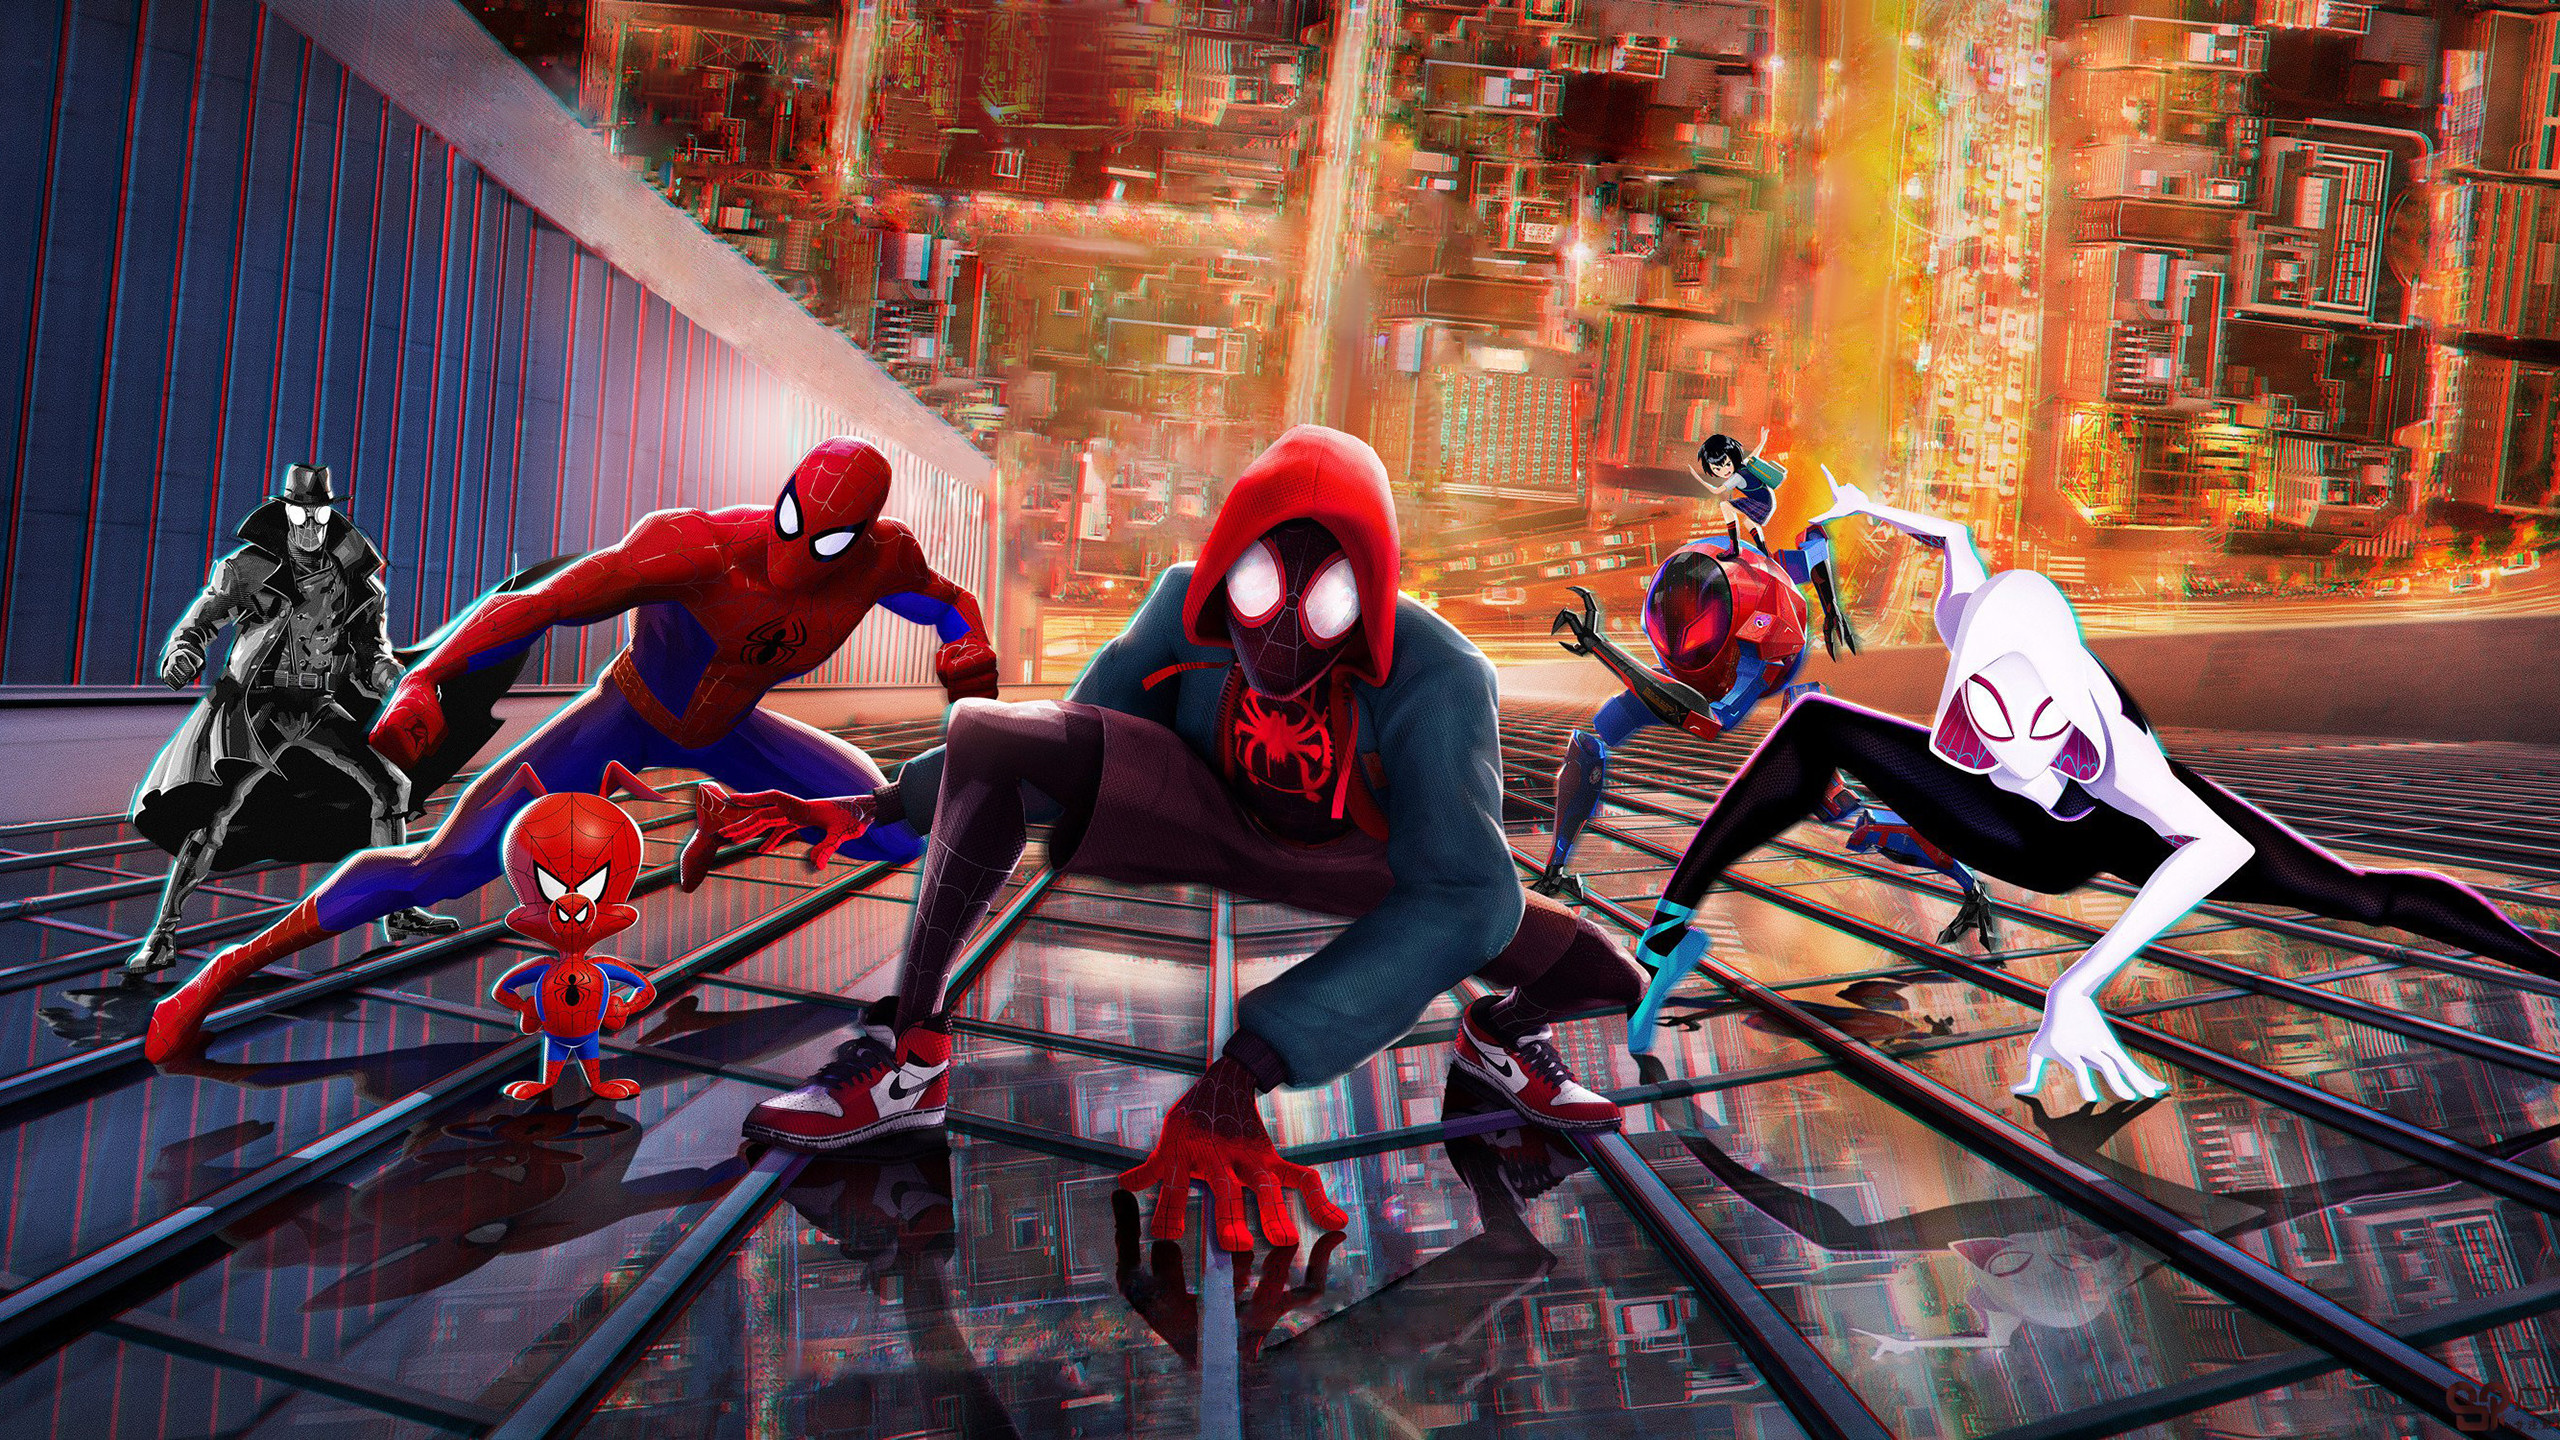 2560x1440 Spider-Man Into the Spider-Verse Wallpapers. Spider-Man Into the Spider-Verse  Wallpapers. Â«Â«